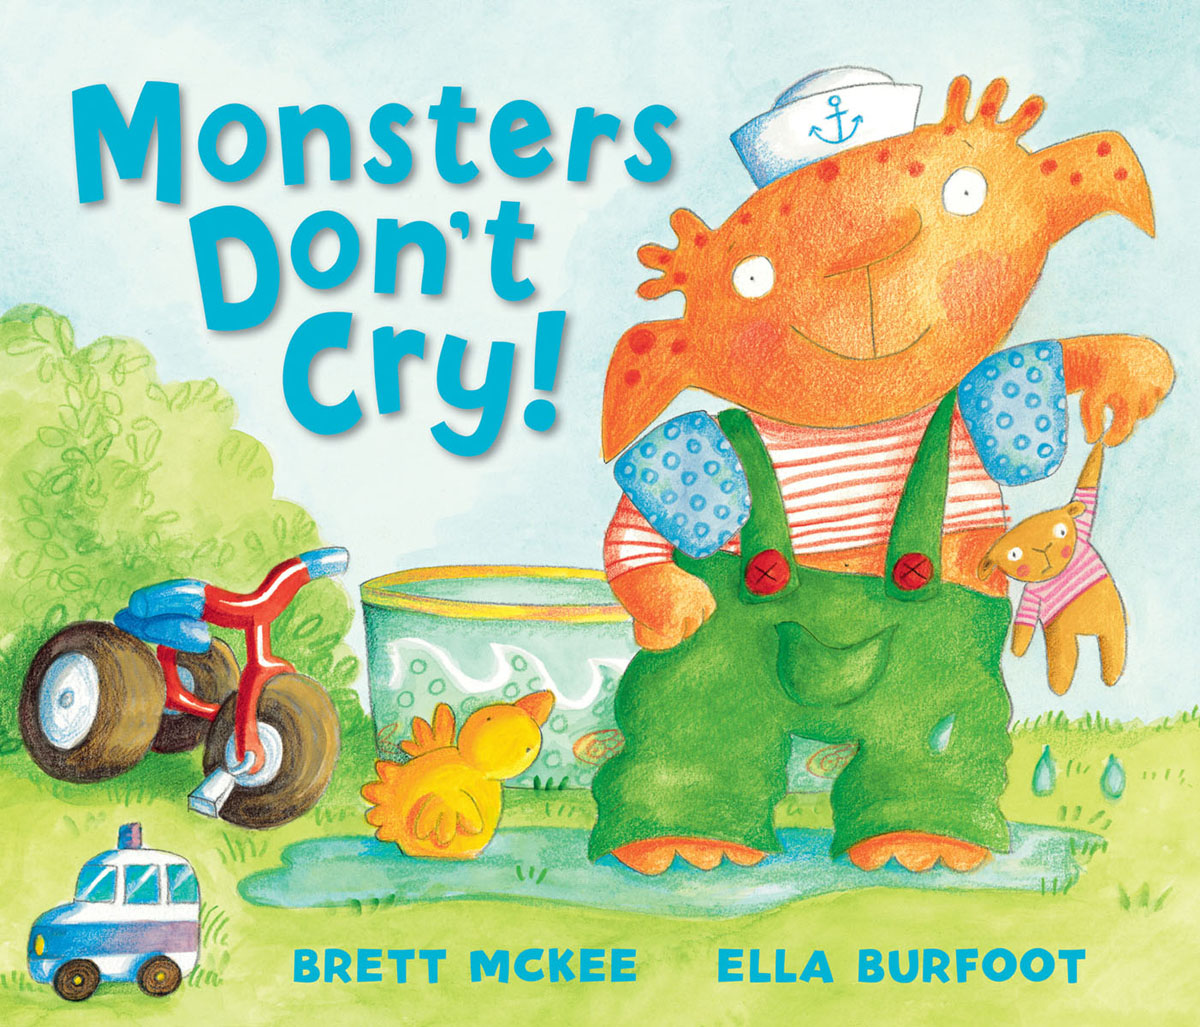 Monsters Don't Cry! monsters of folk monsters of folk monsters of folk